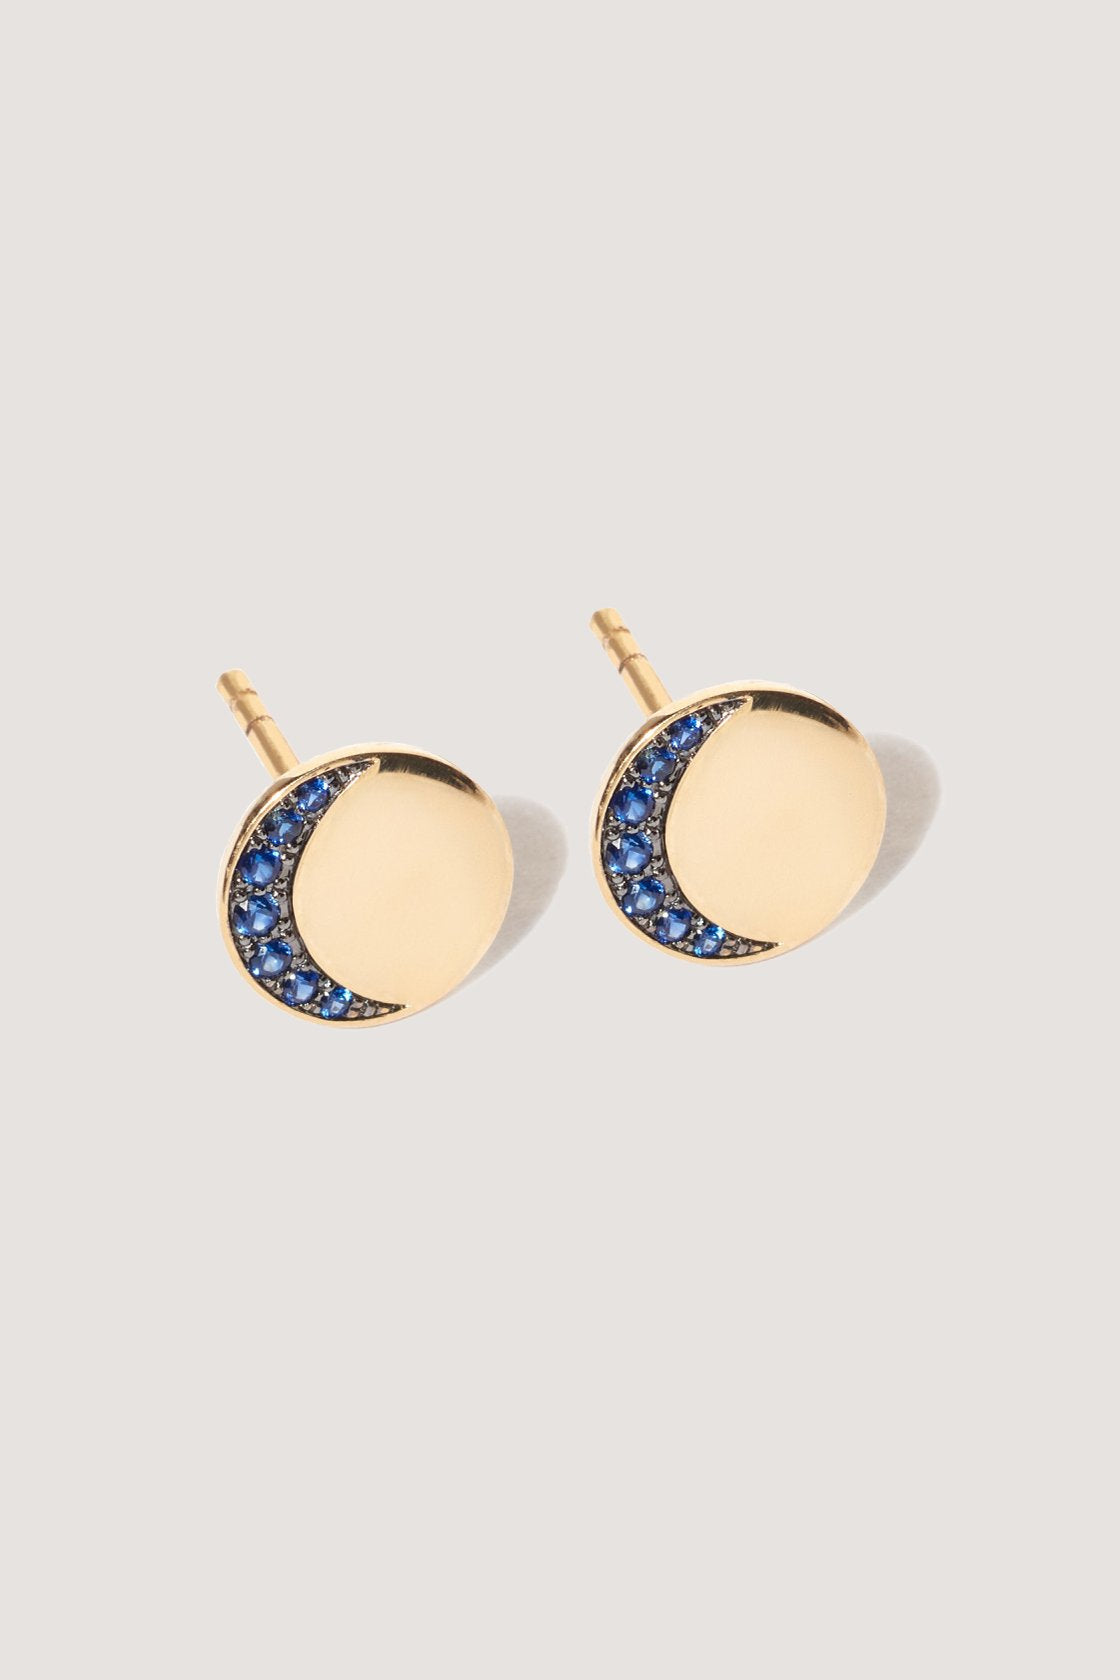 Pamela Love - Moon Phase Studs, Gold and Sapphire